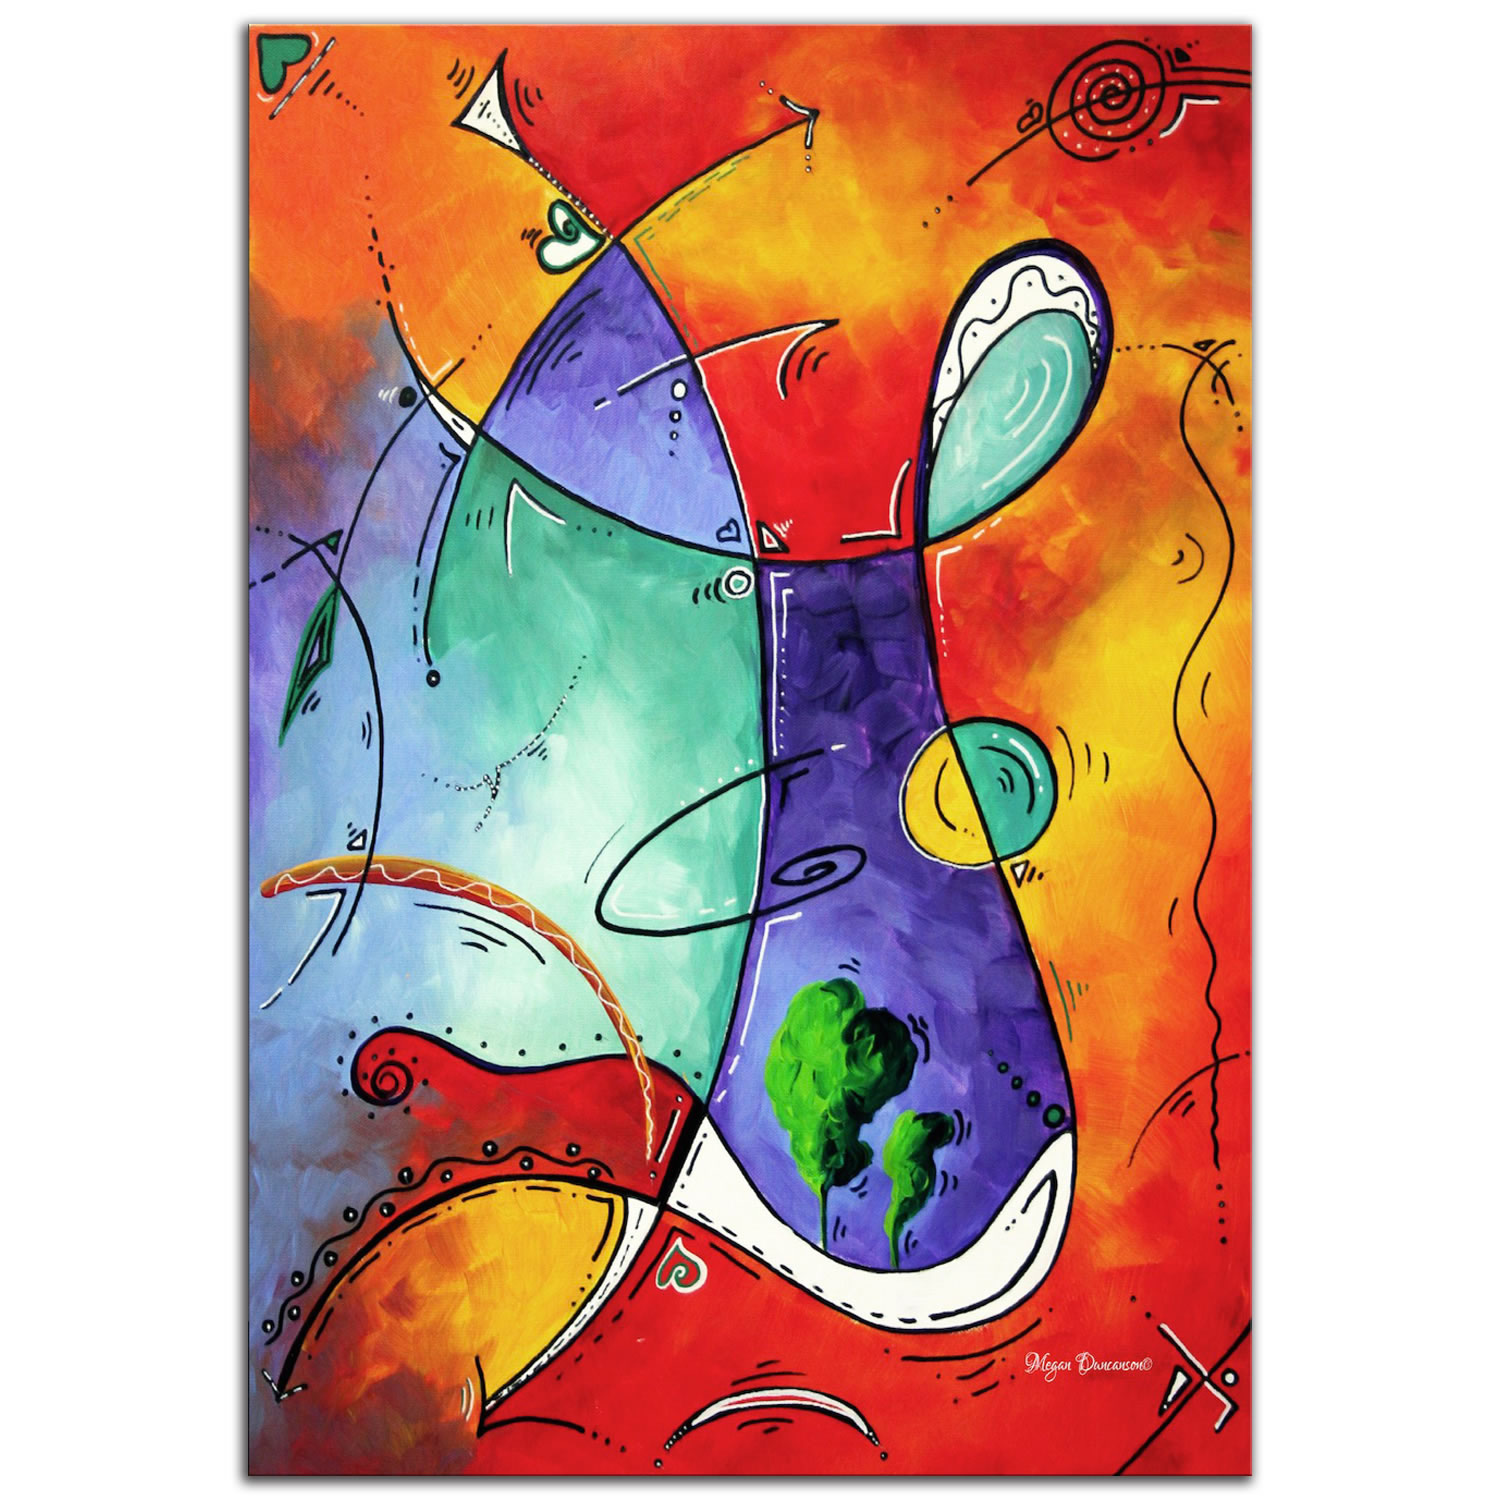 Free at Last - Abstract Painting Print by Megan Duncanson